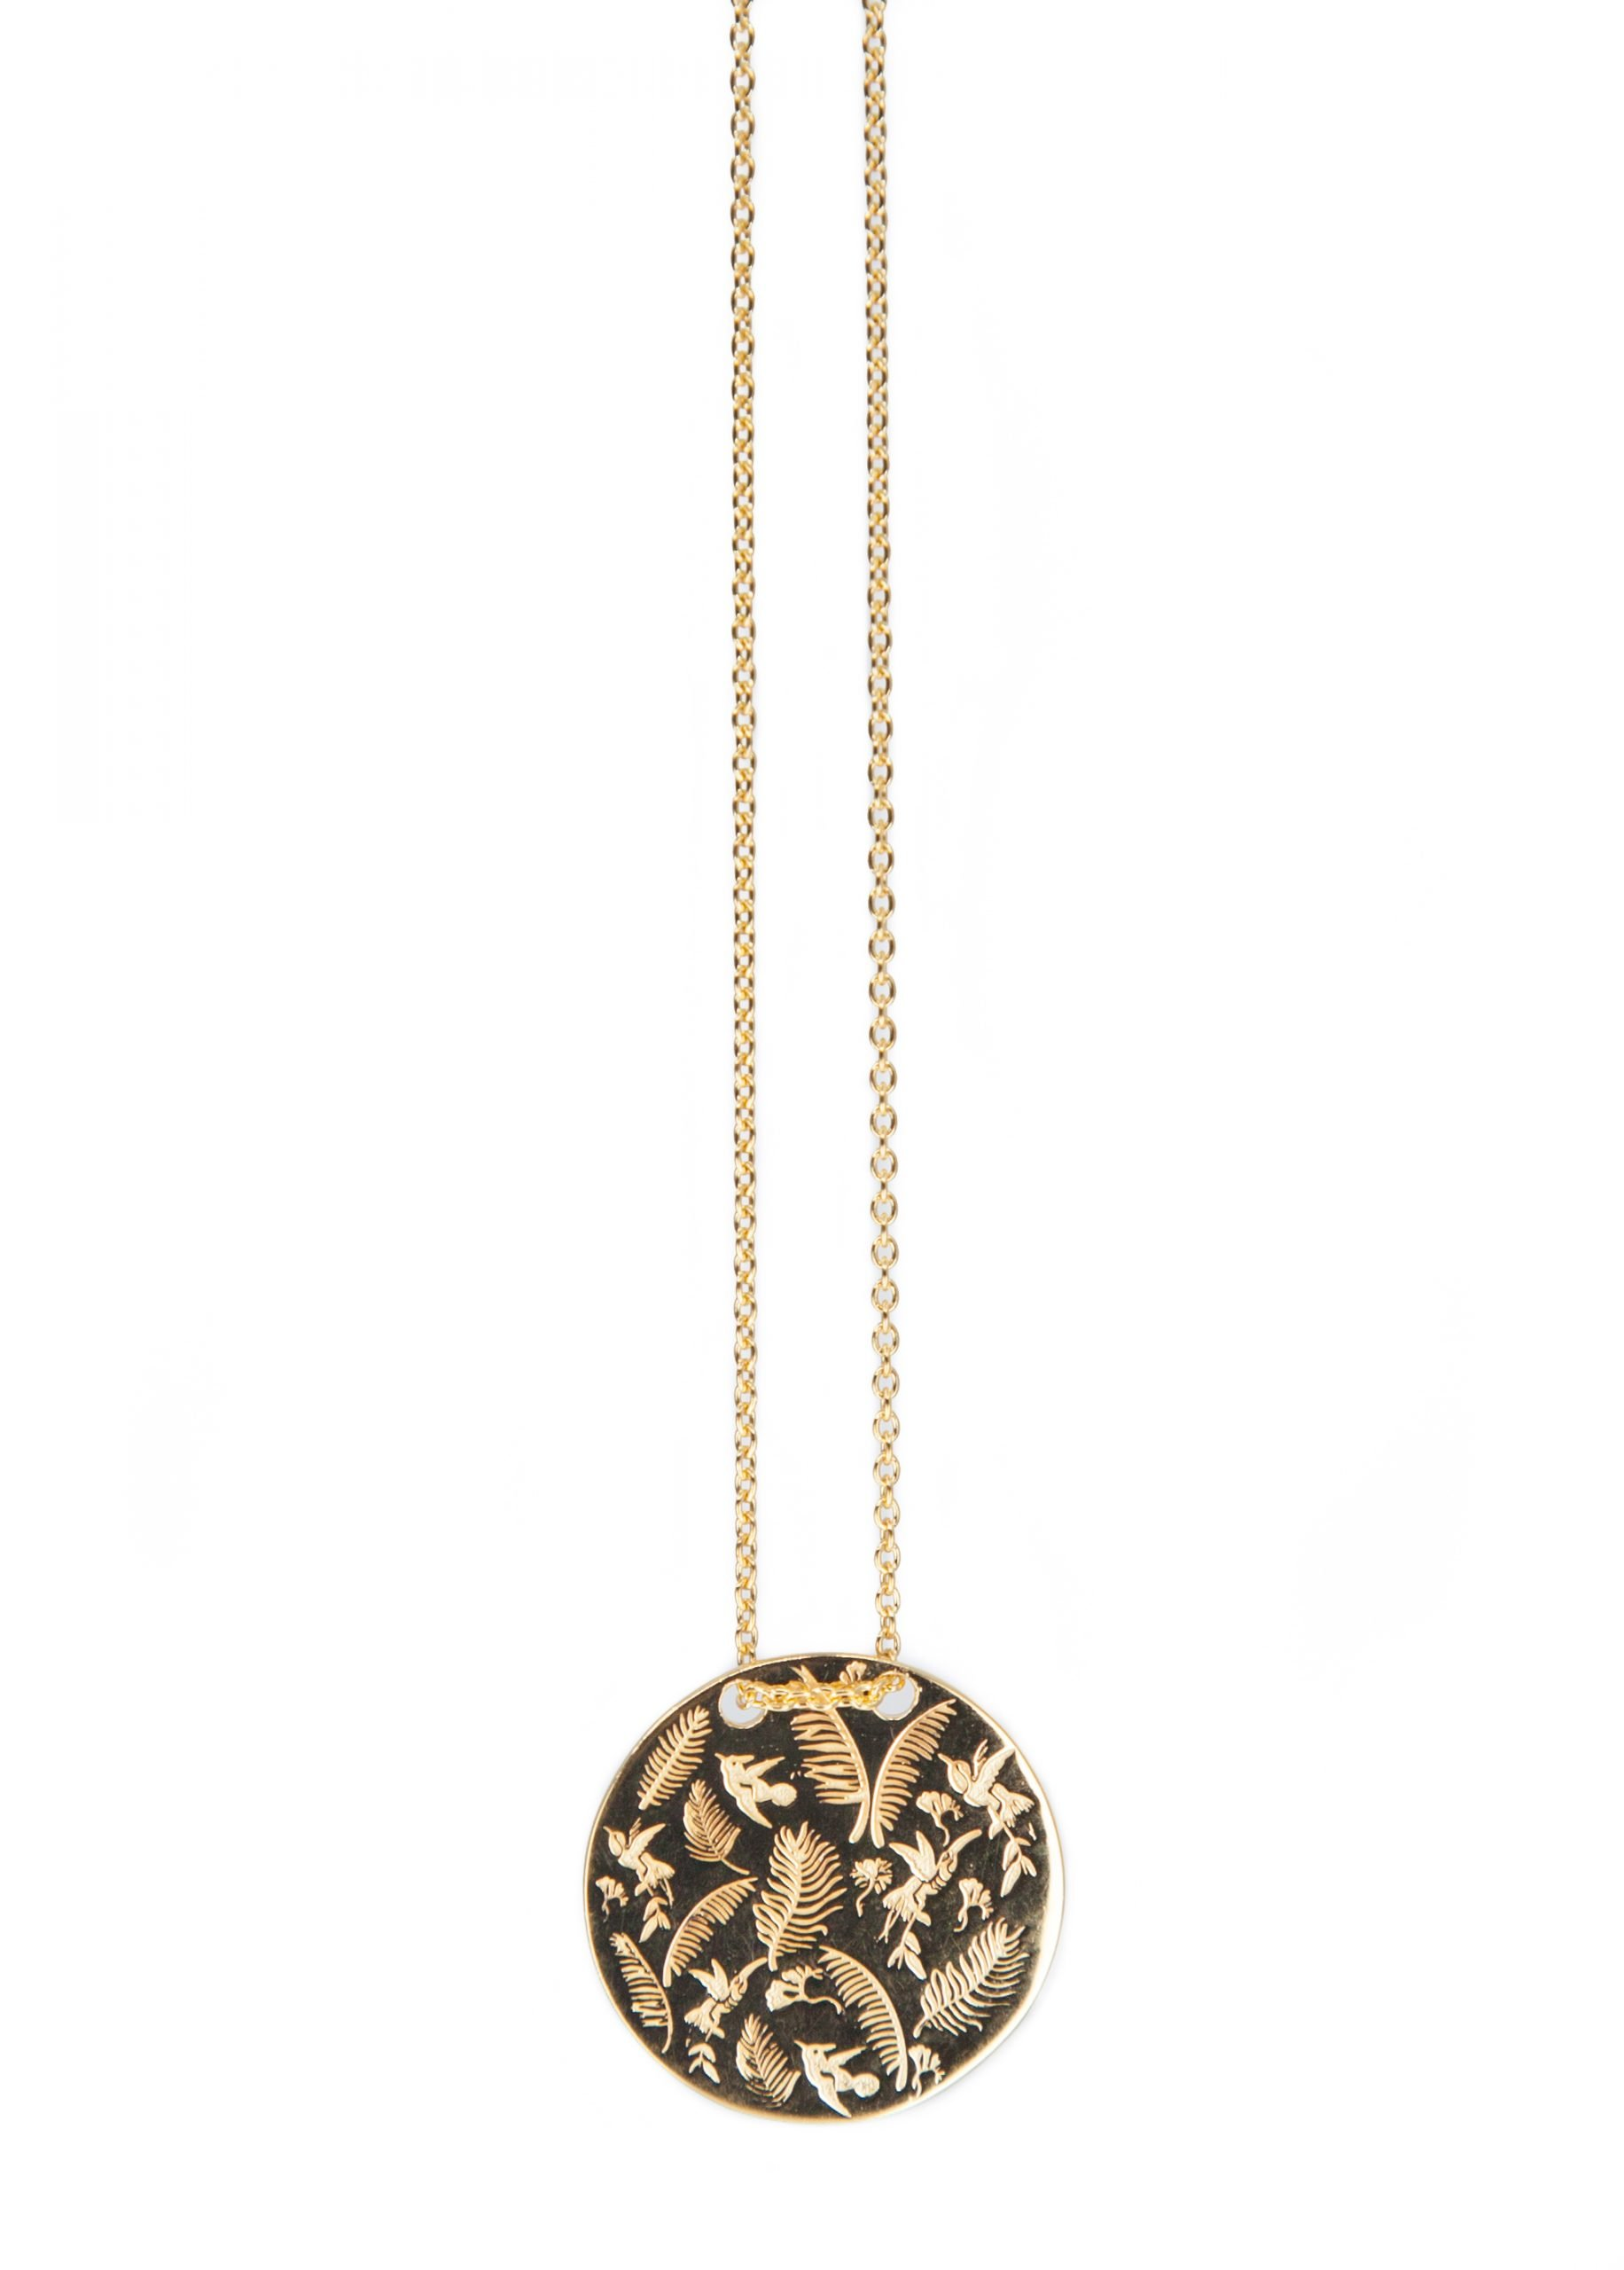 necklace for women with birds fashion jewelry capsule by juliette